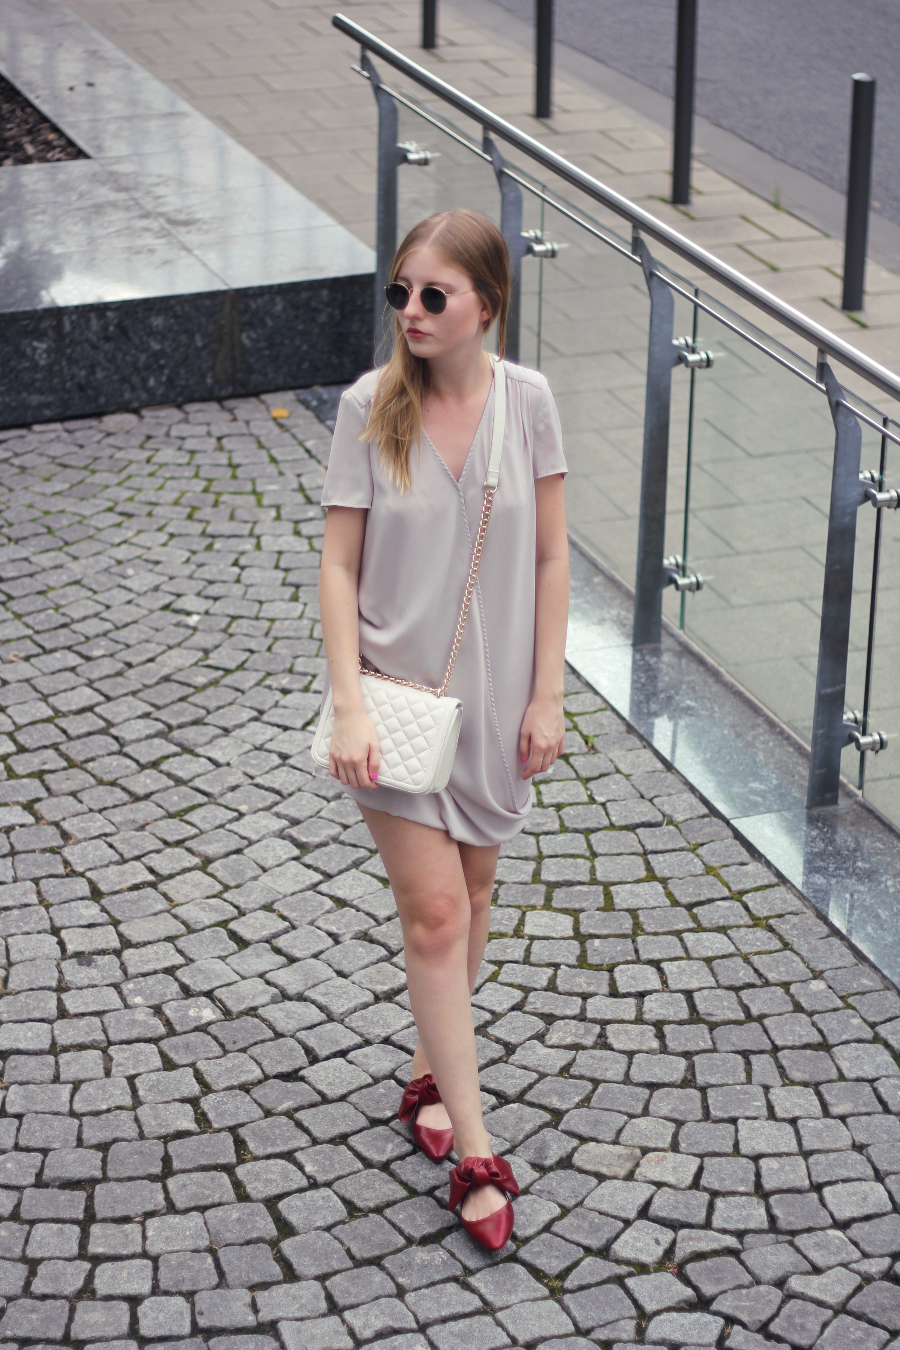 outfit pale skin girl city summer look white grey dress red slippers cream bag gold chain ray ban round sunglasses